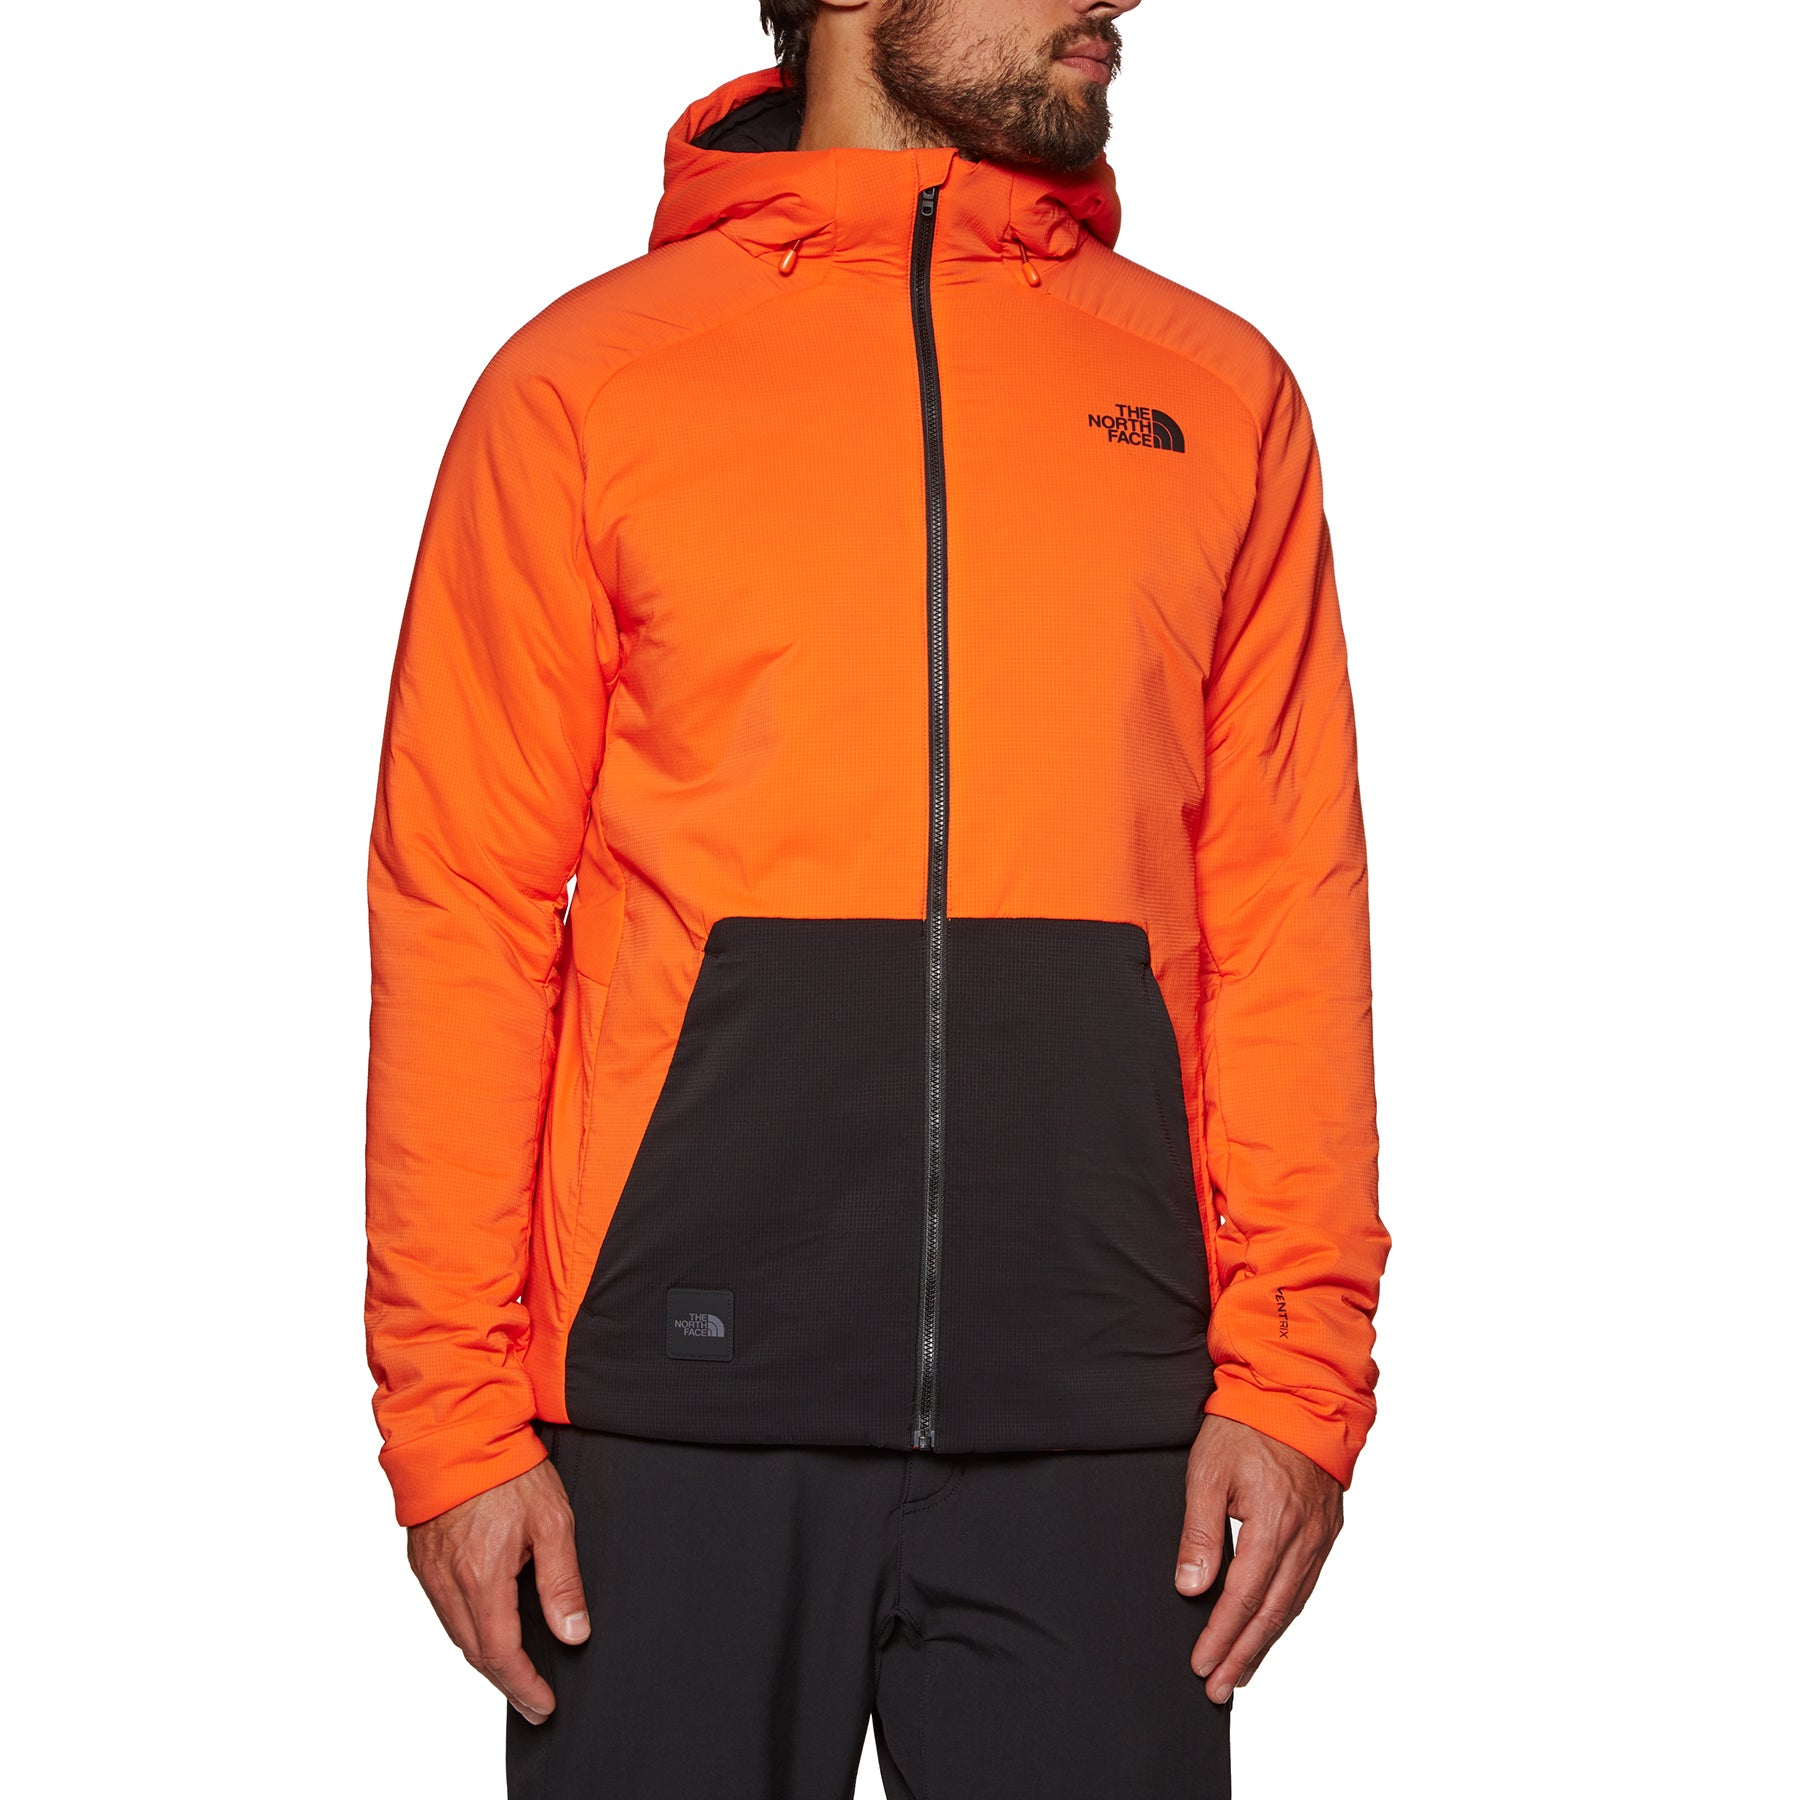 North Face Lodgefather Ventrix Jacket - Persian Orange TNF Black